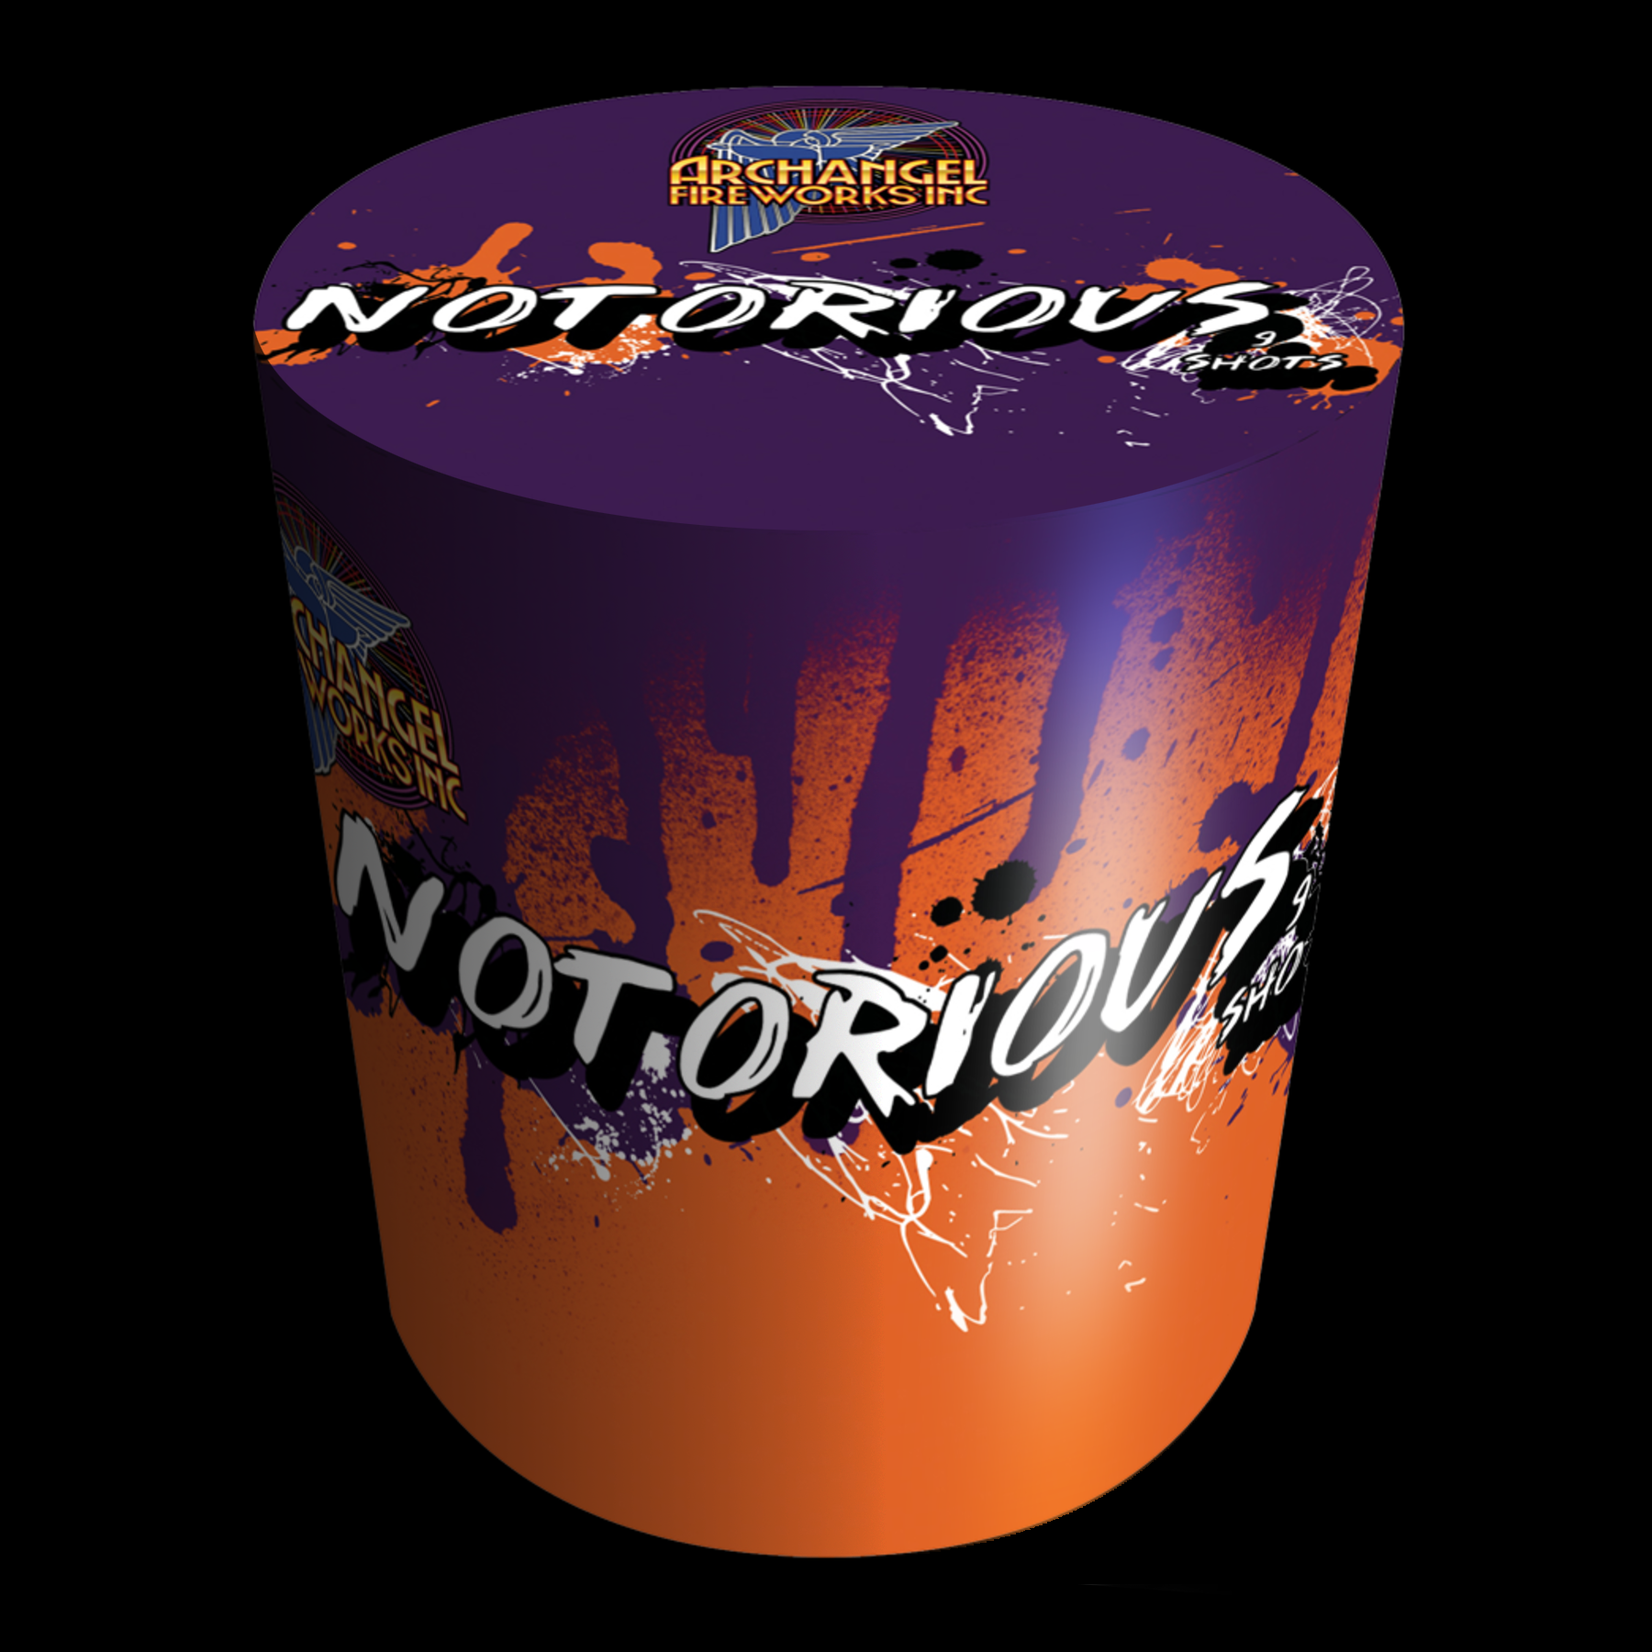 Notorious - An Archangel Fireworks Exclusive!